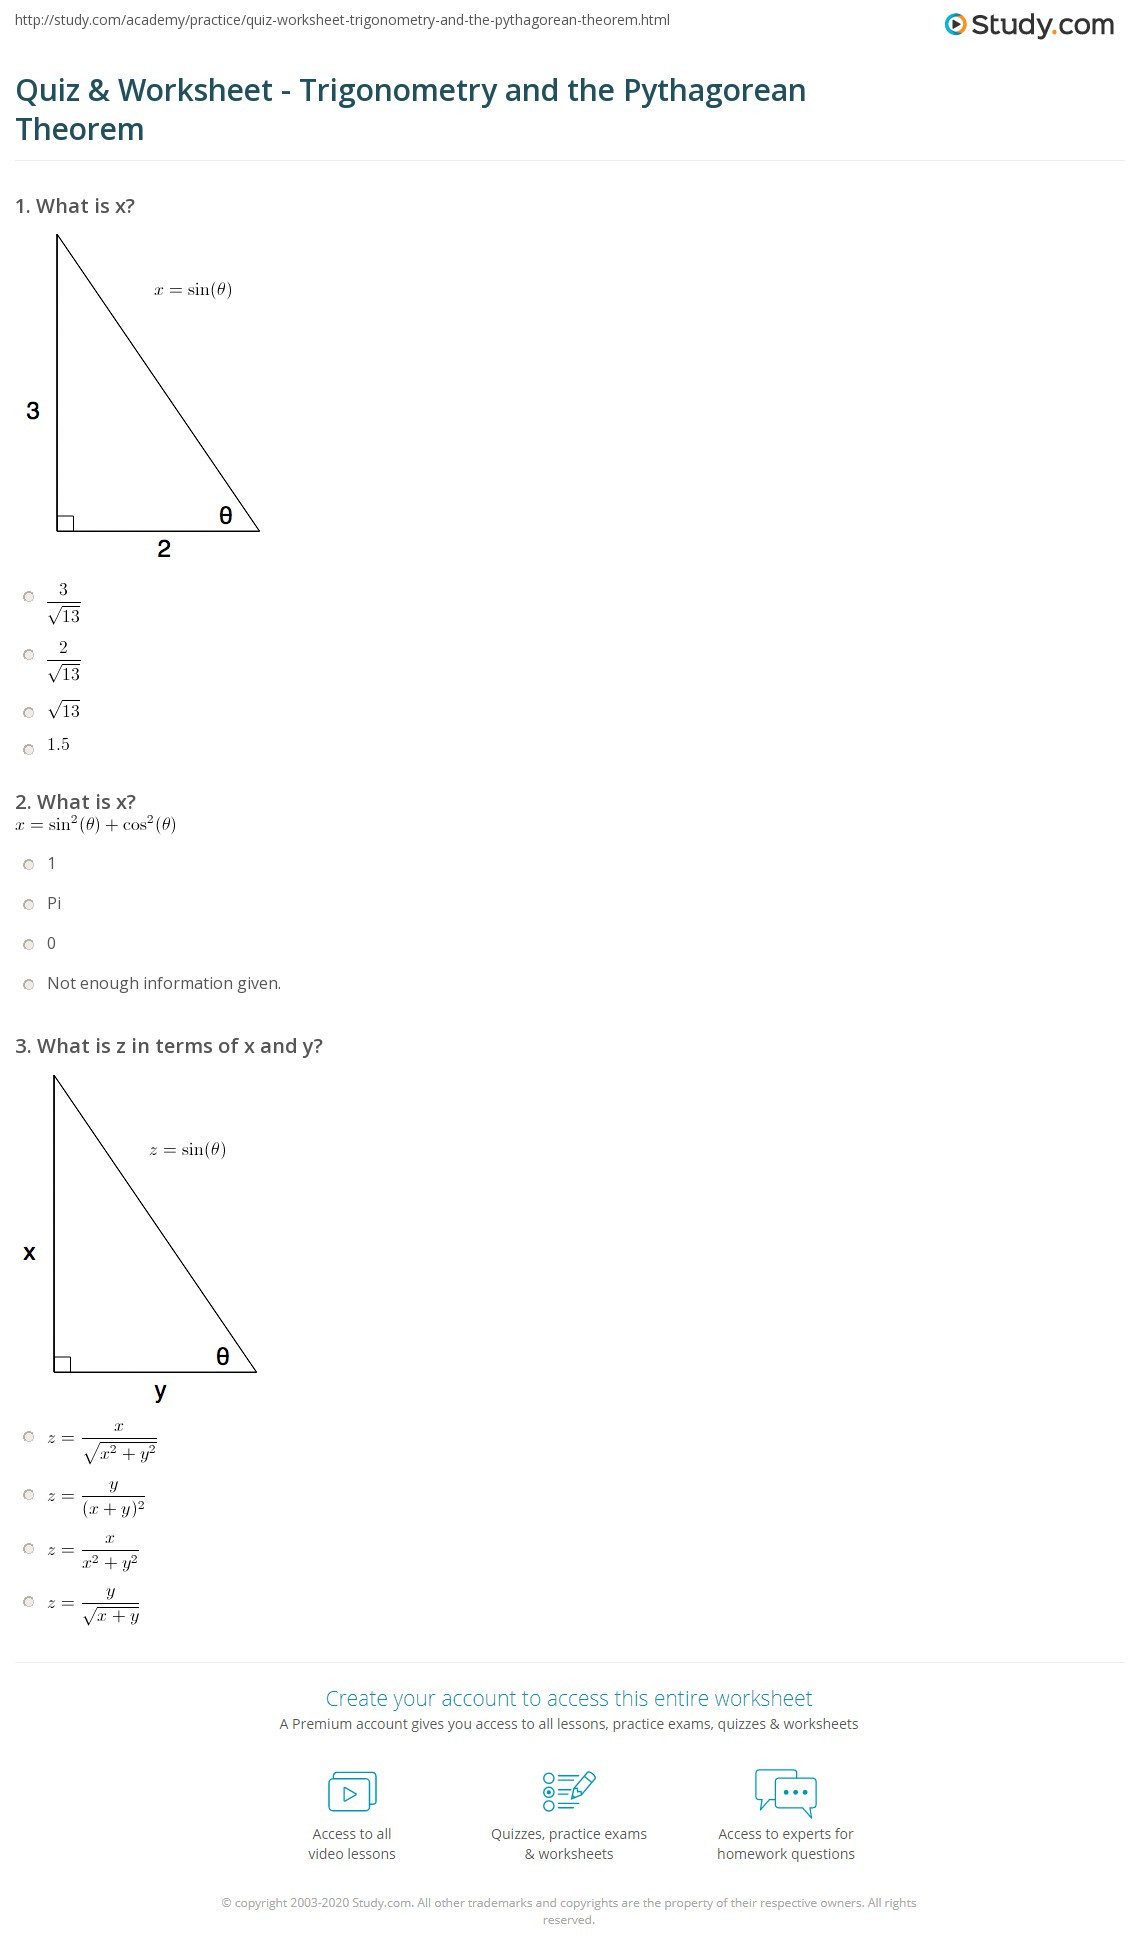 Pythagorean theorem Worksheet with Answers Quiz & Worksheet Trigonometry and the Pythagorean theorem